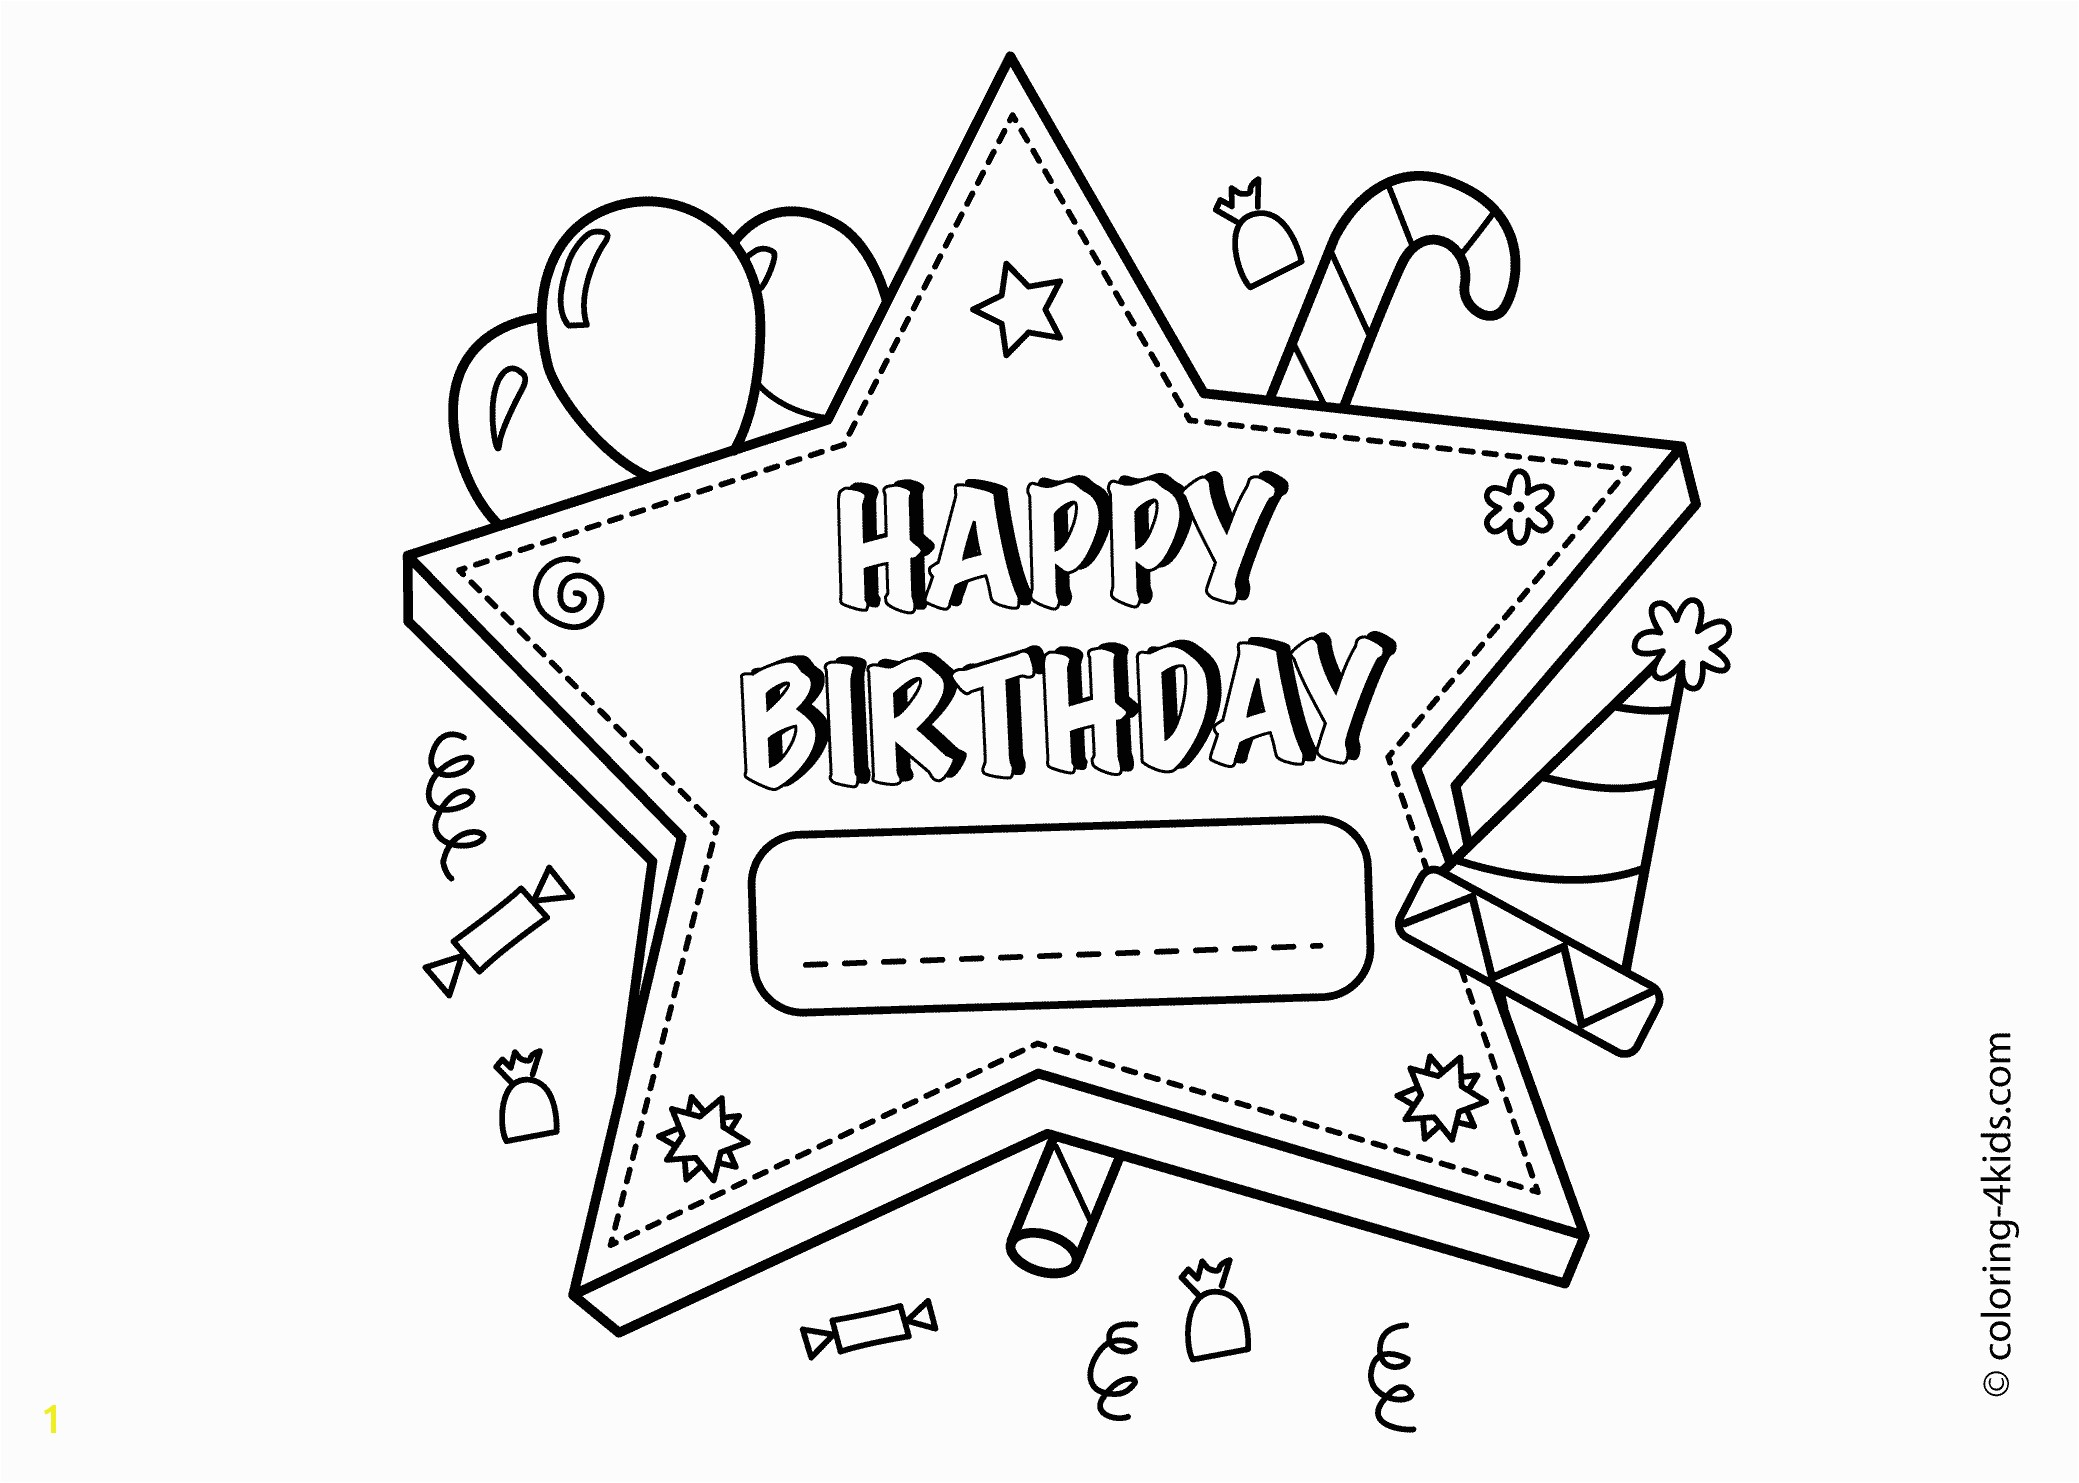 Happy Birthday Uncle Coloring Pages Happy Birthday Coloring Card Inside Pages Mofassel